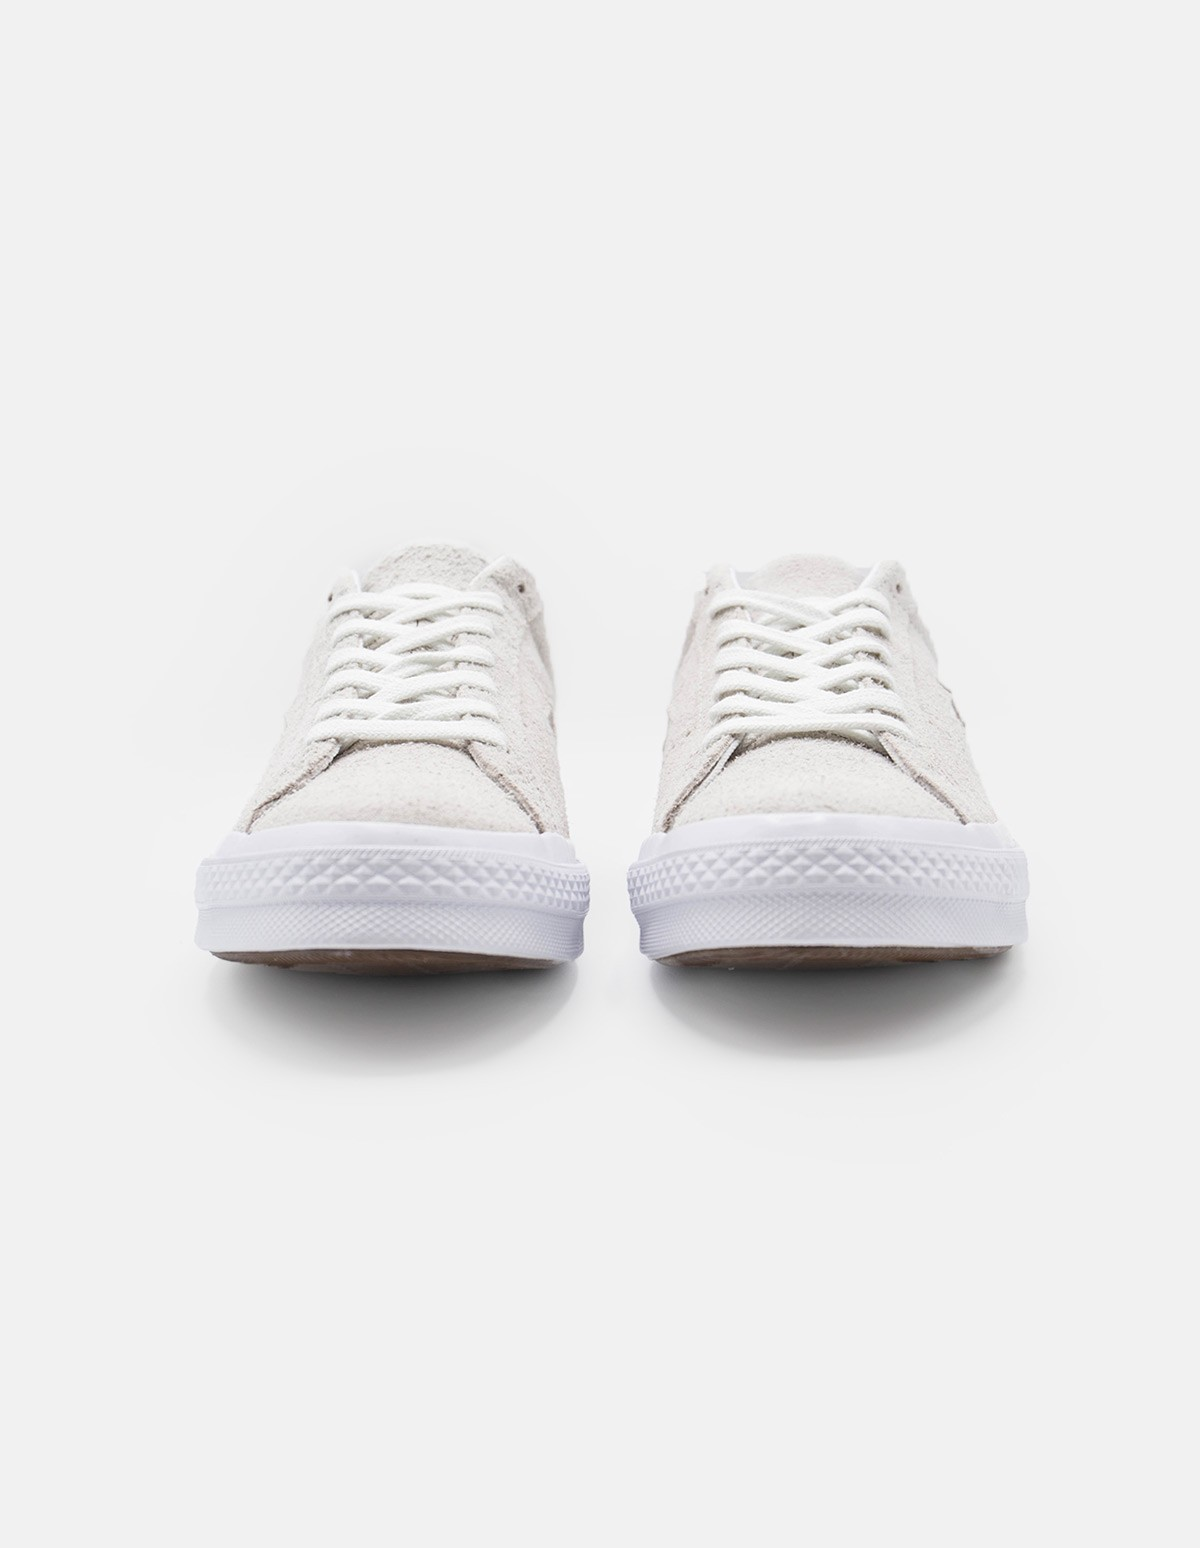 Converse One Star OX in White / White